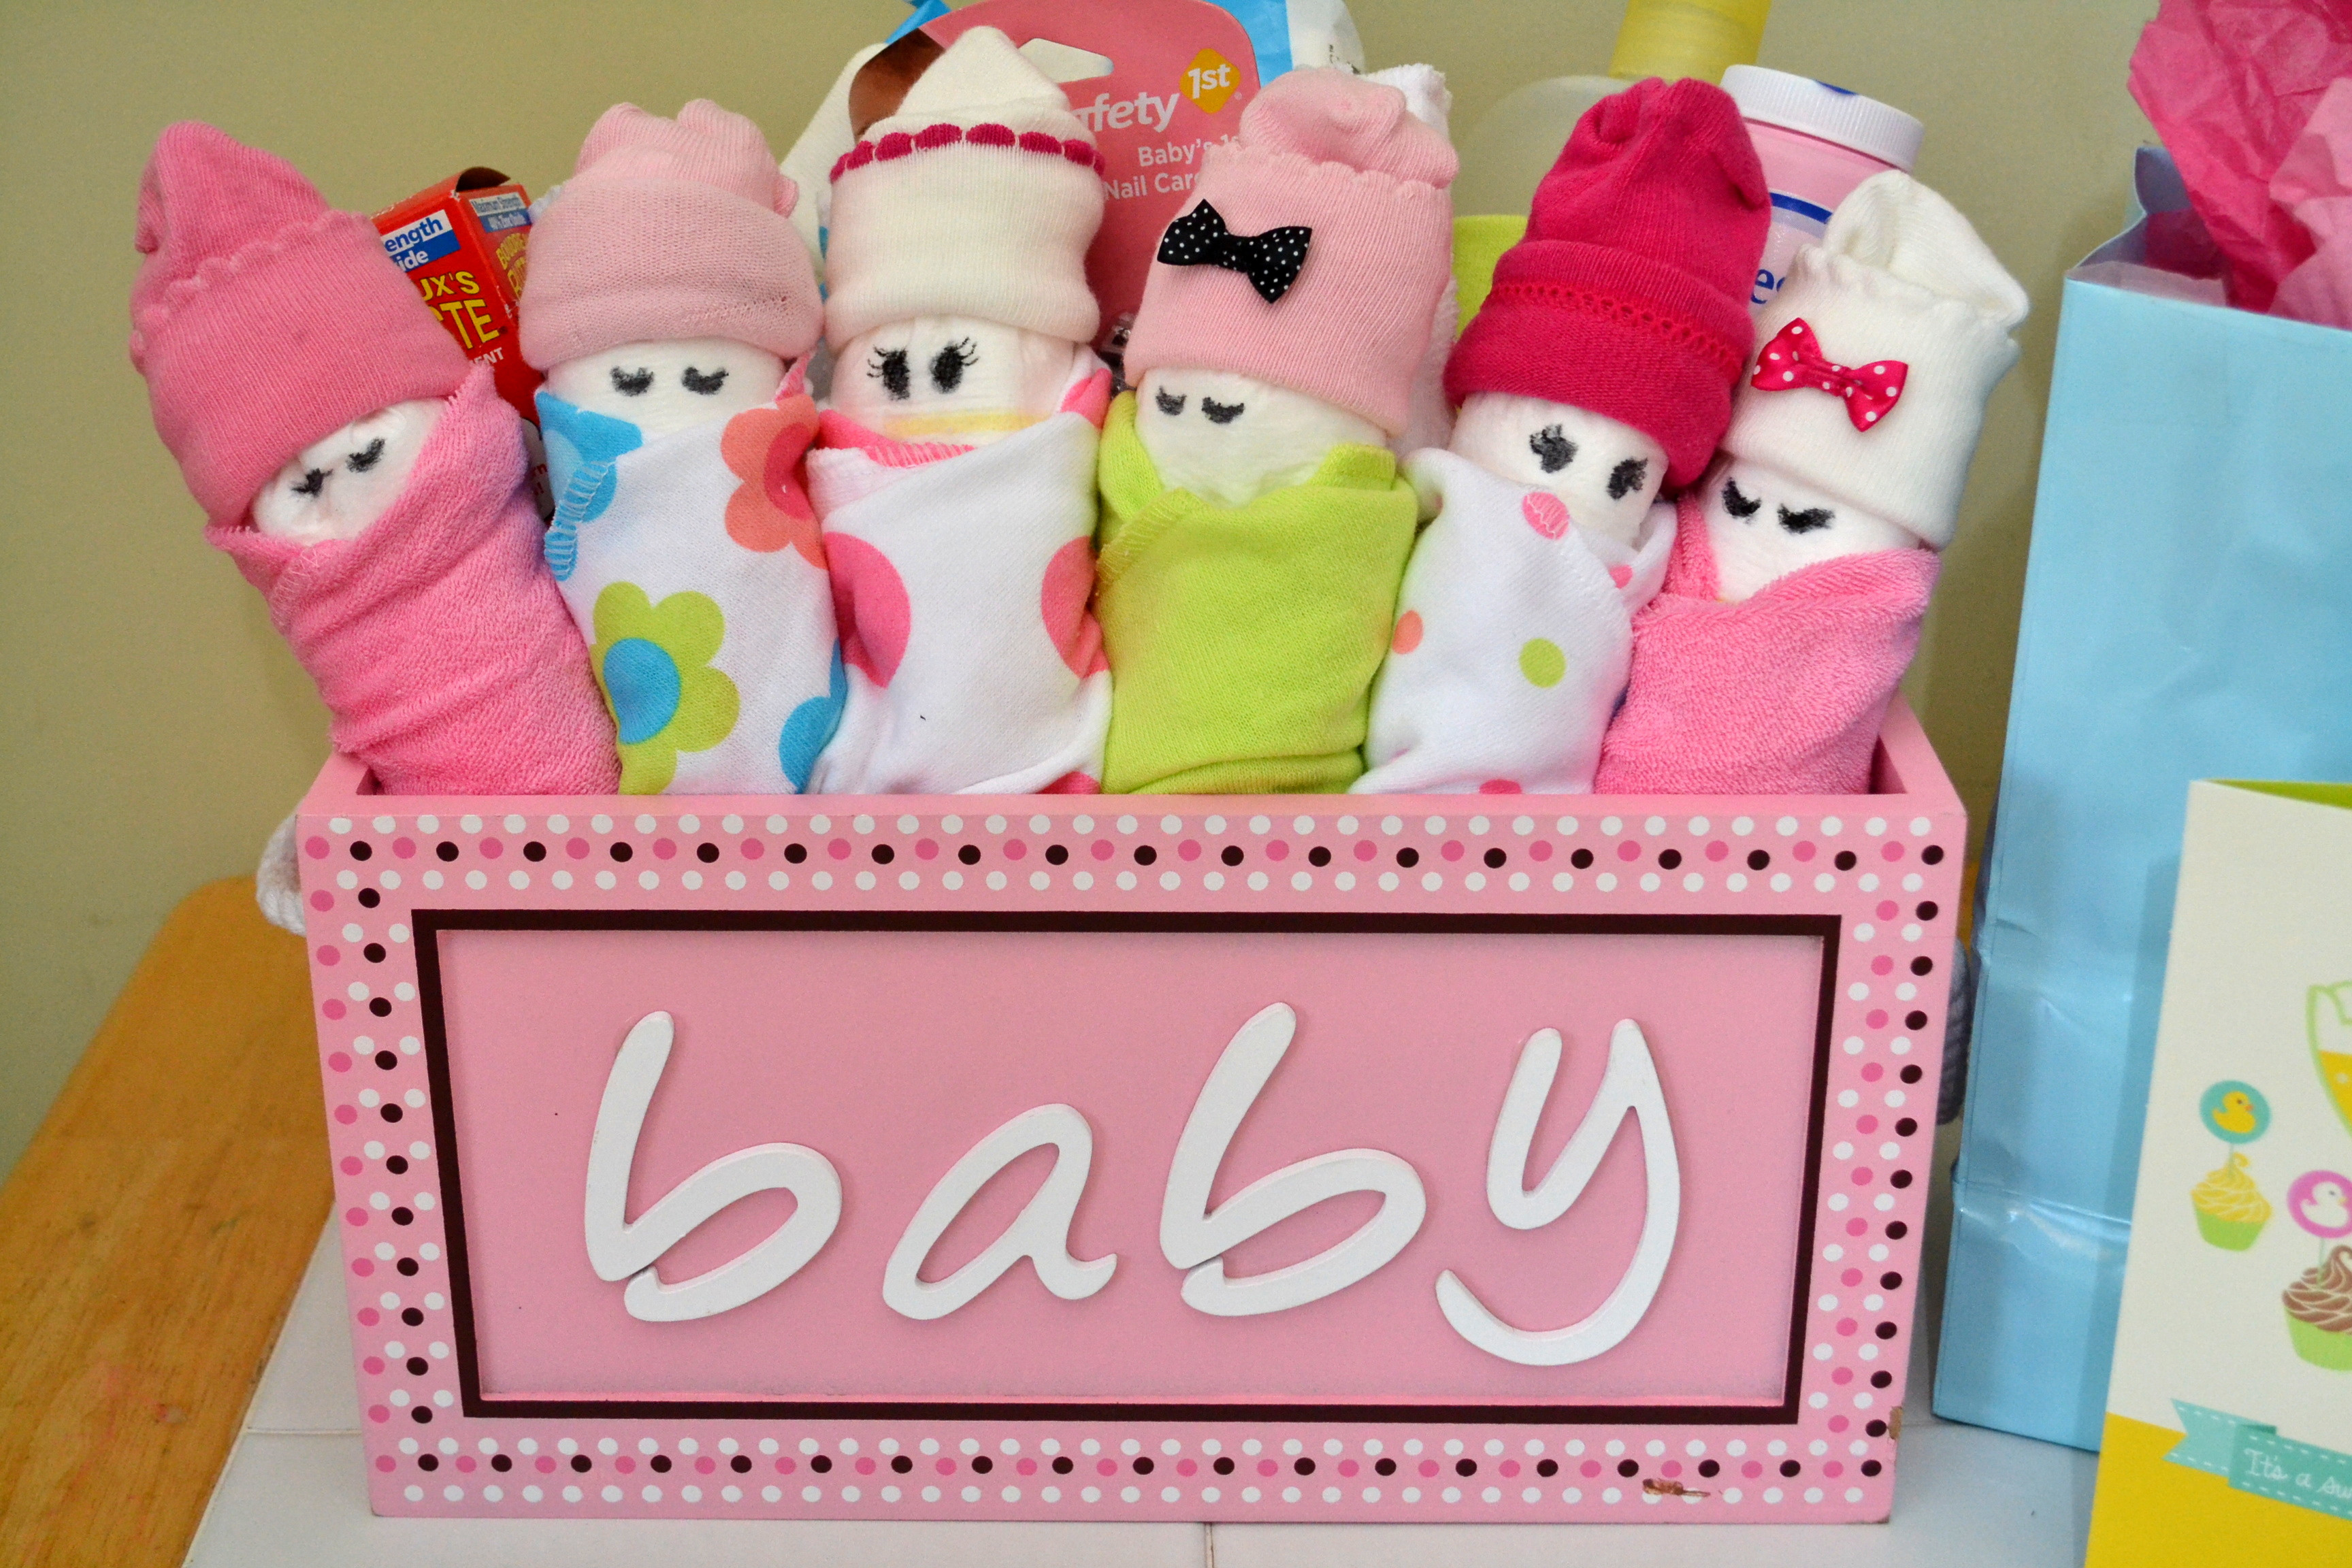 Best ideas about Baby Shower Ideas Gift . Save or Pin Essential Baby Shower Gifts & DIY Diaper Babies Now.